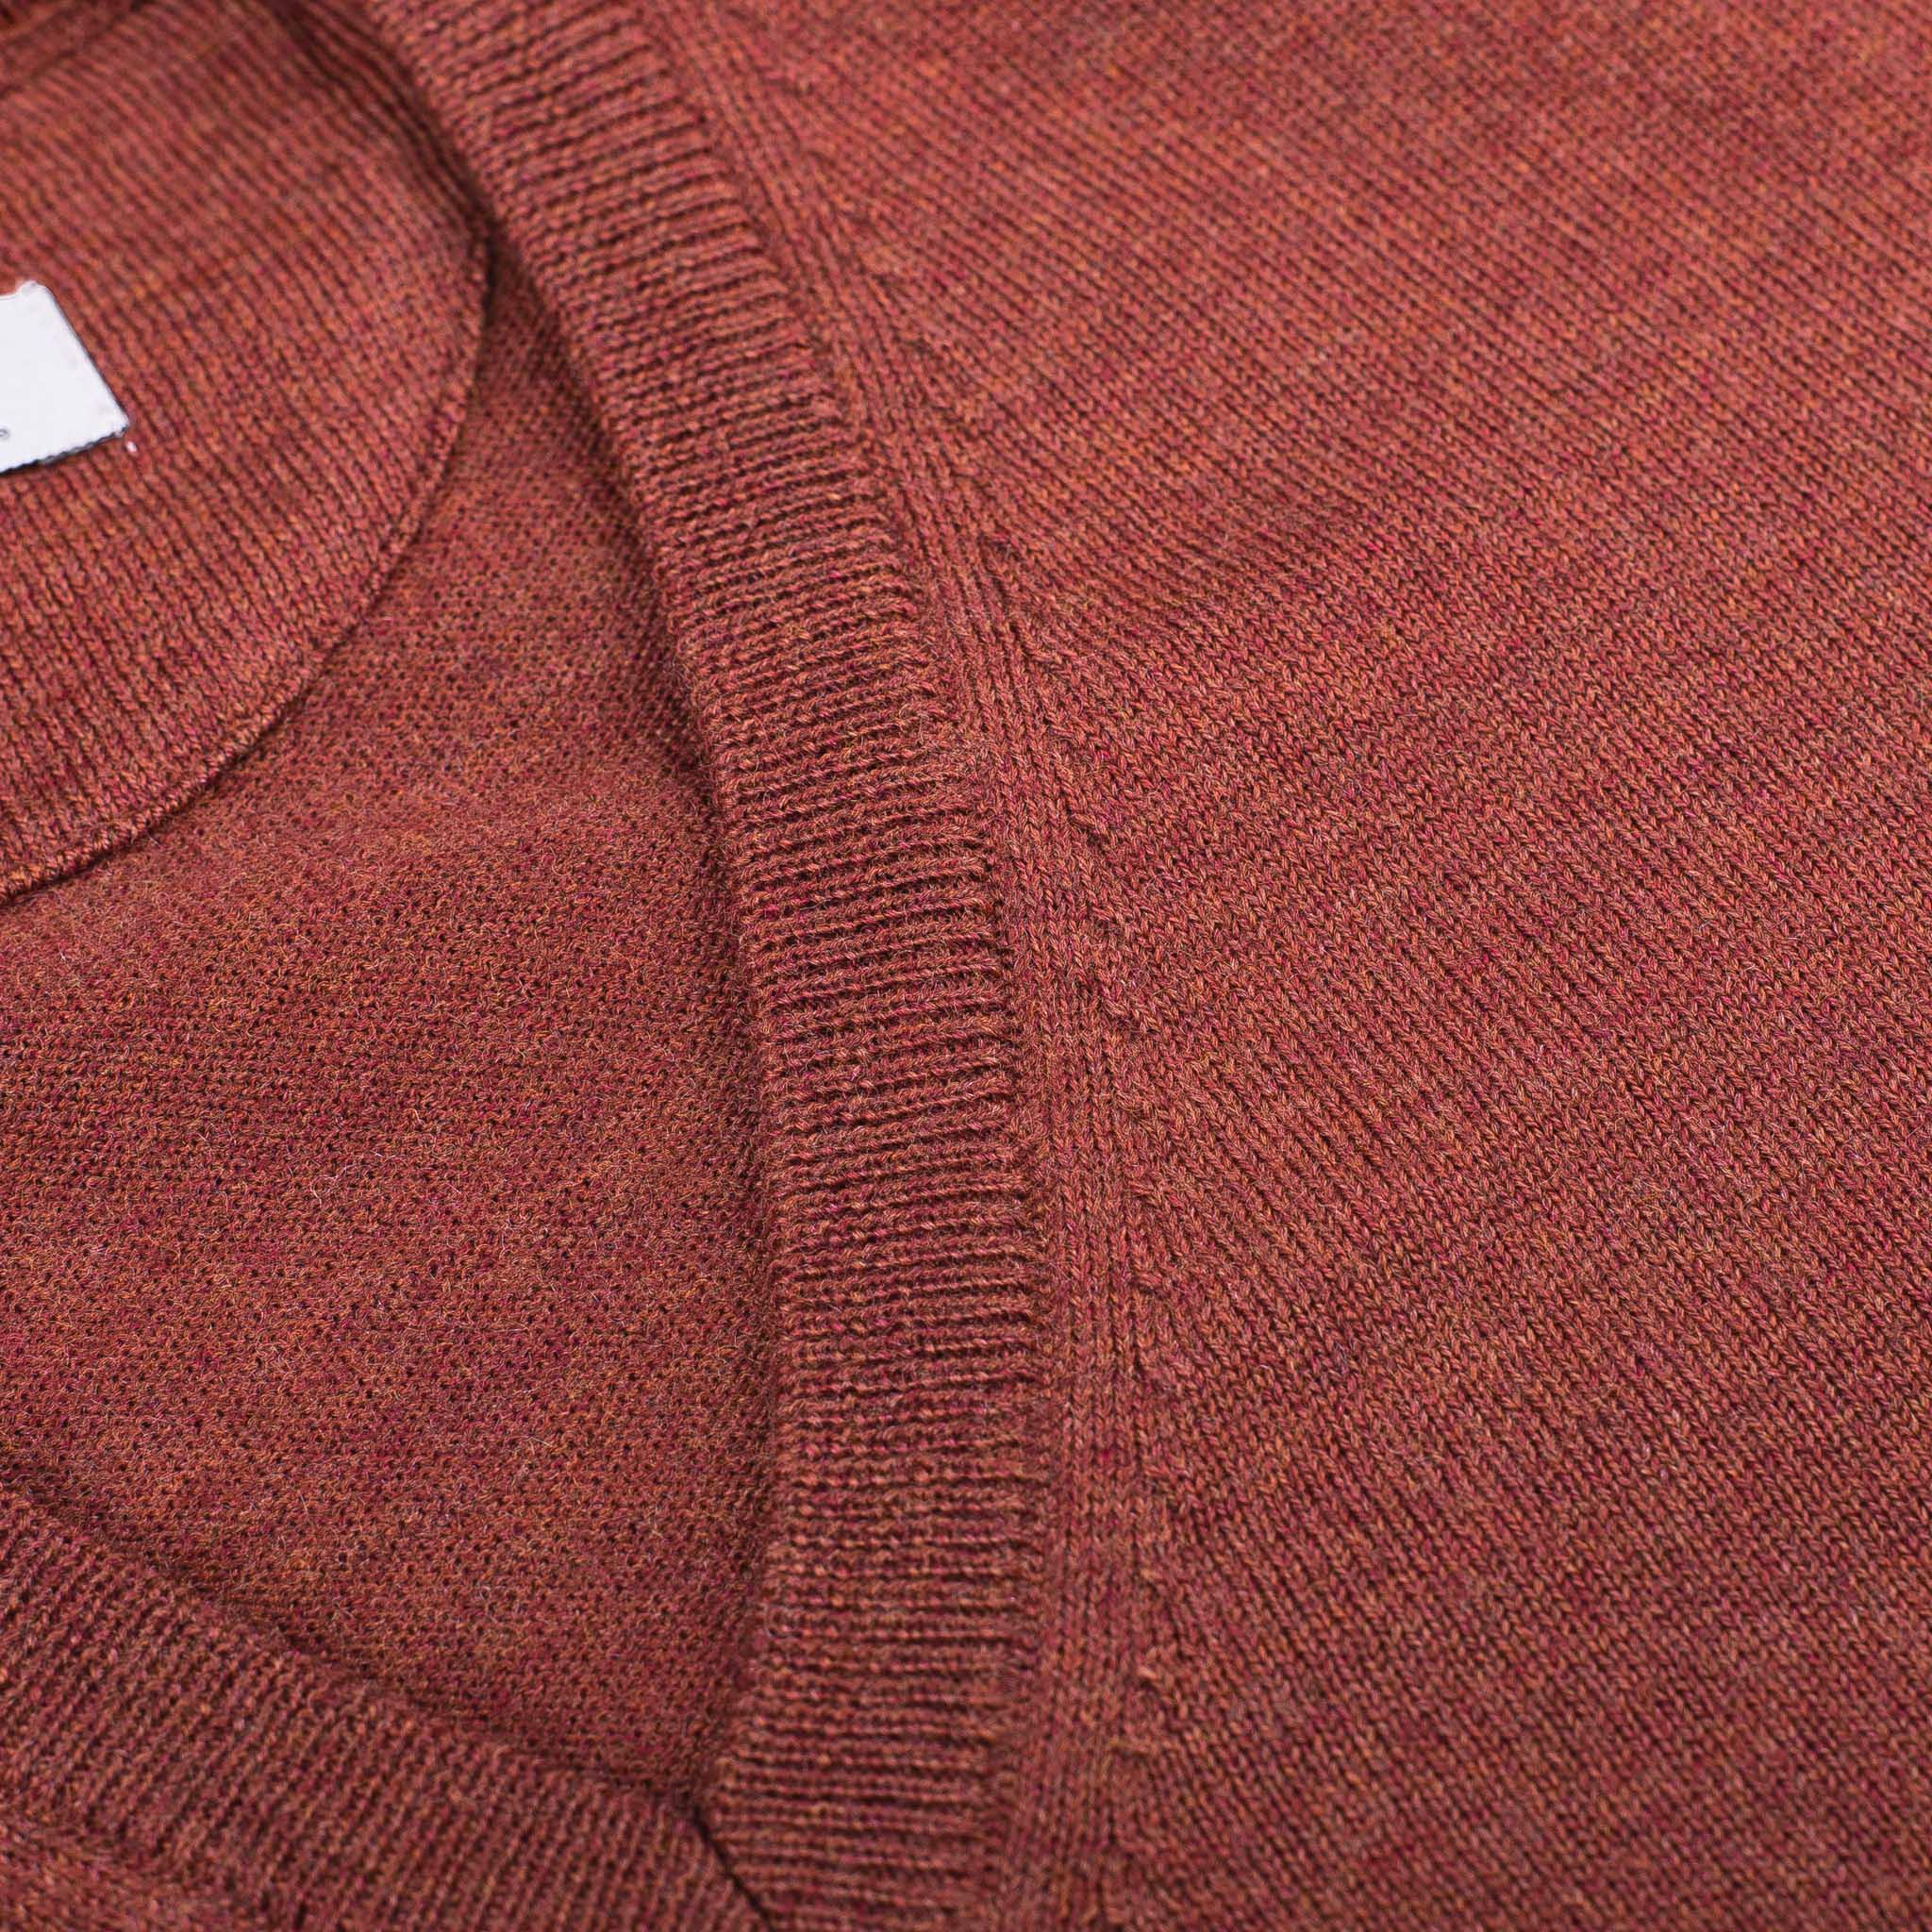 V-NECK-PULLOVER-JERSEY-CUELLO-DE-PICO-01-05-The-Seëlk-6